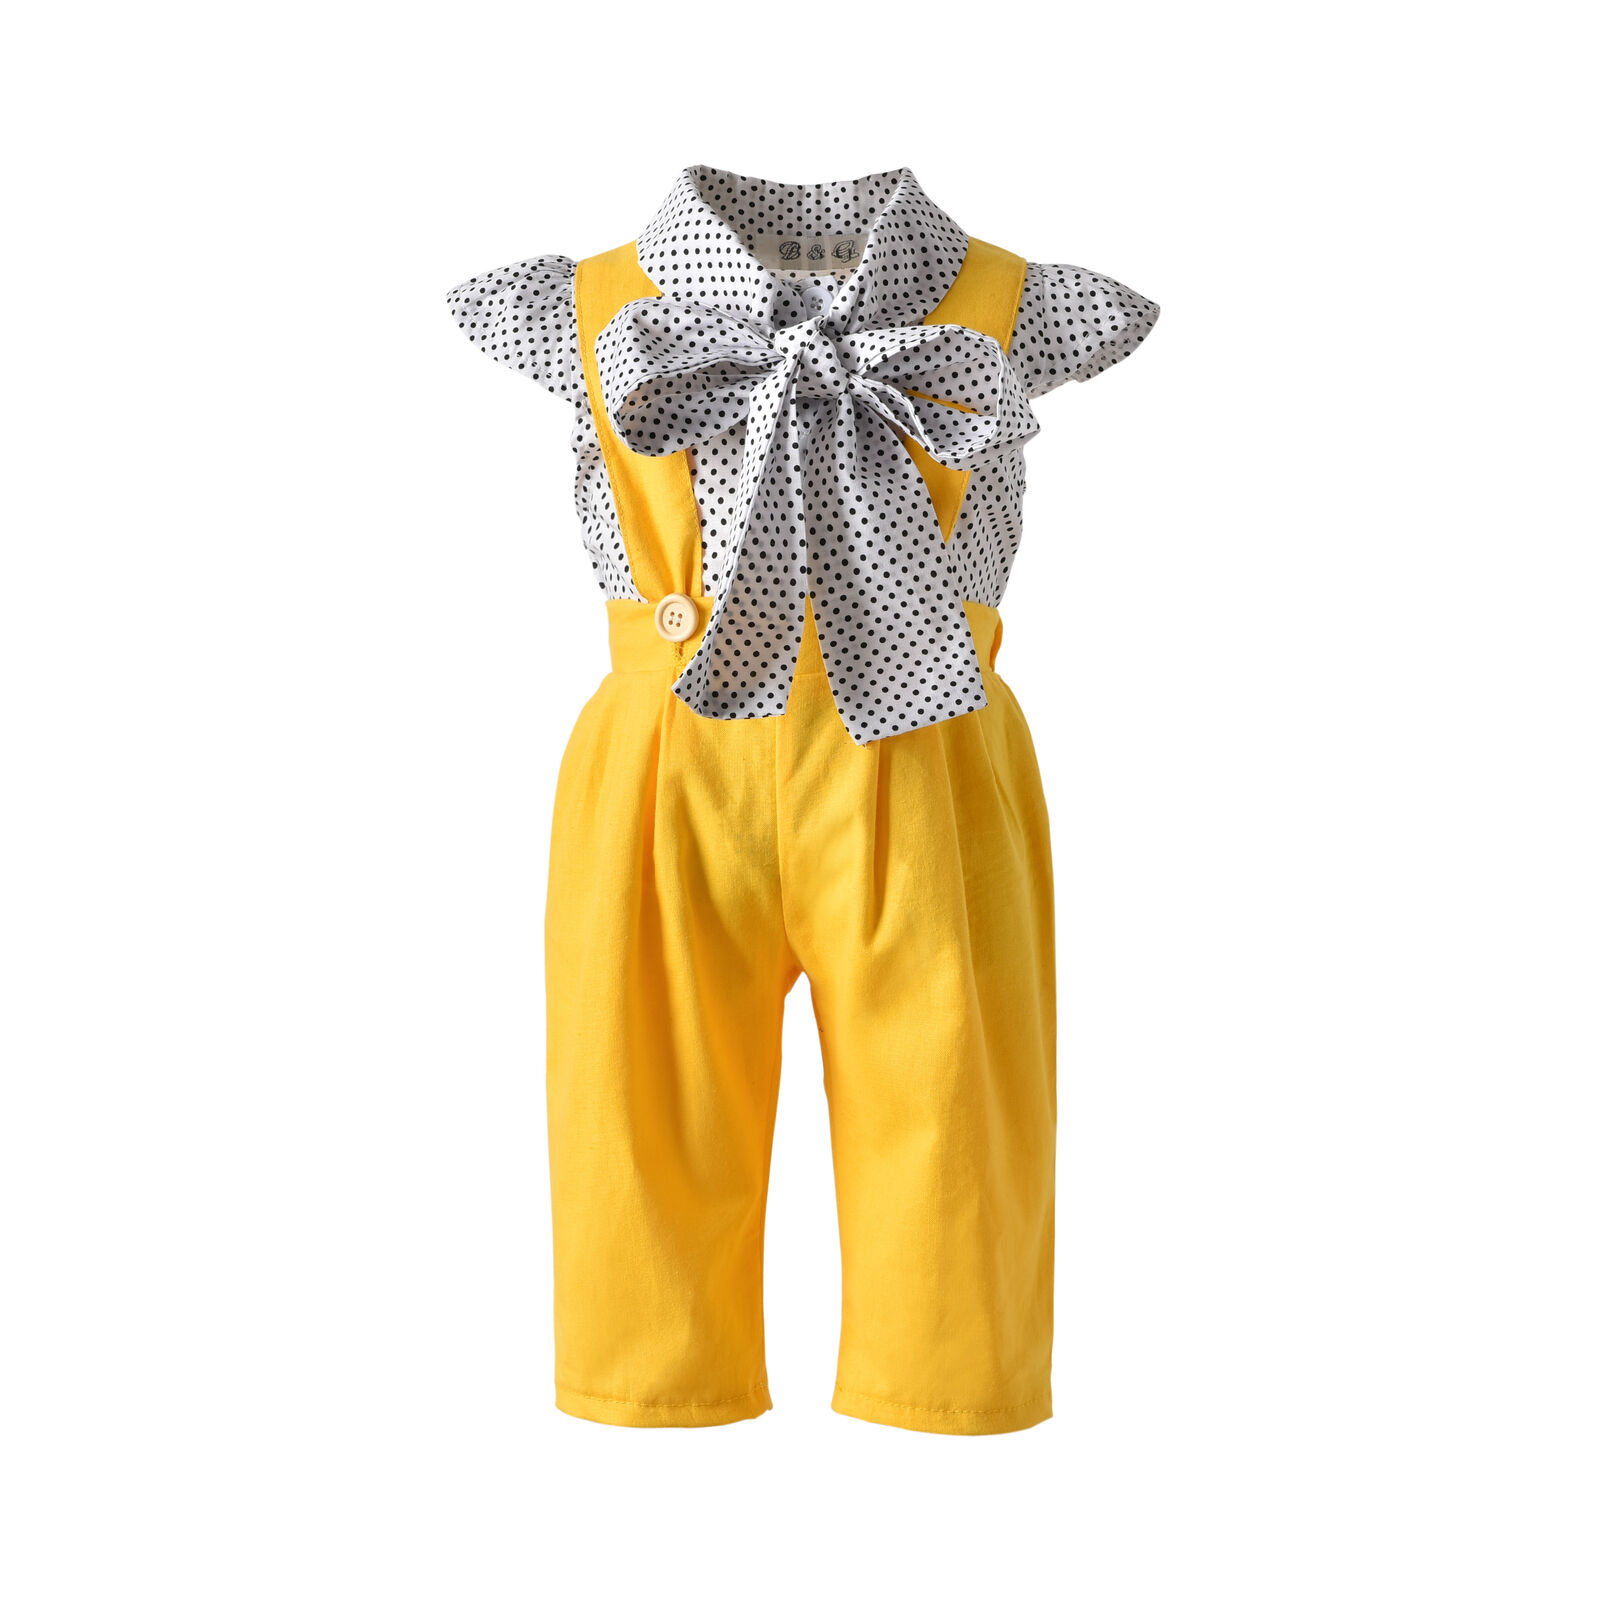 Objective 2019 Newest Style Newborn Kids Baby Girl Spring Summer Bowknot Short Sleeve Tops+suspender Pants Outfits Sunsuit Set 6m-5y To Invigorate Health Effectively Clothing Sets